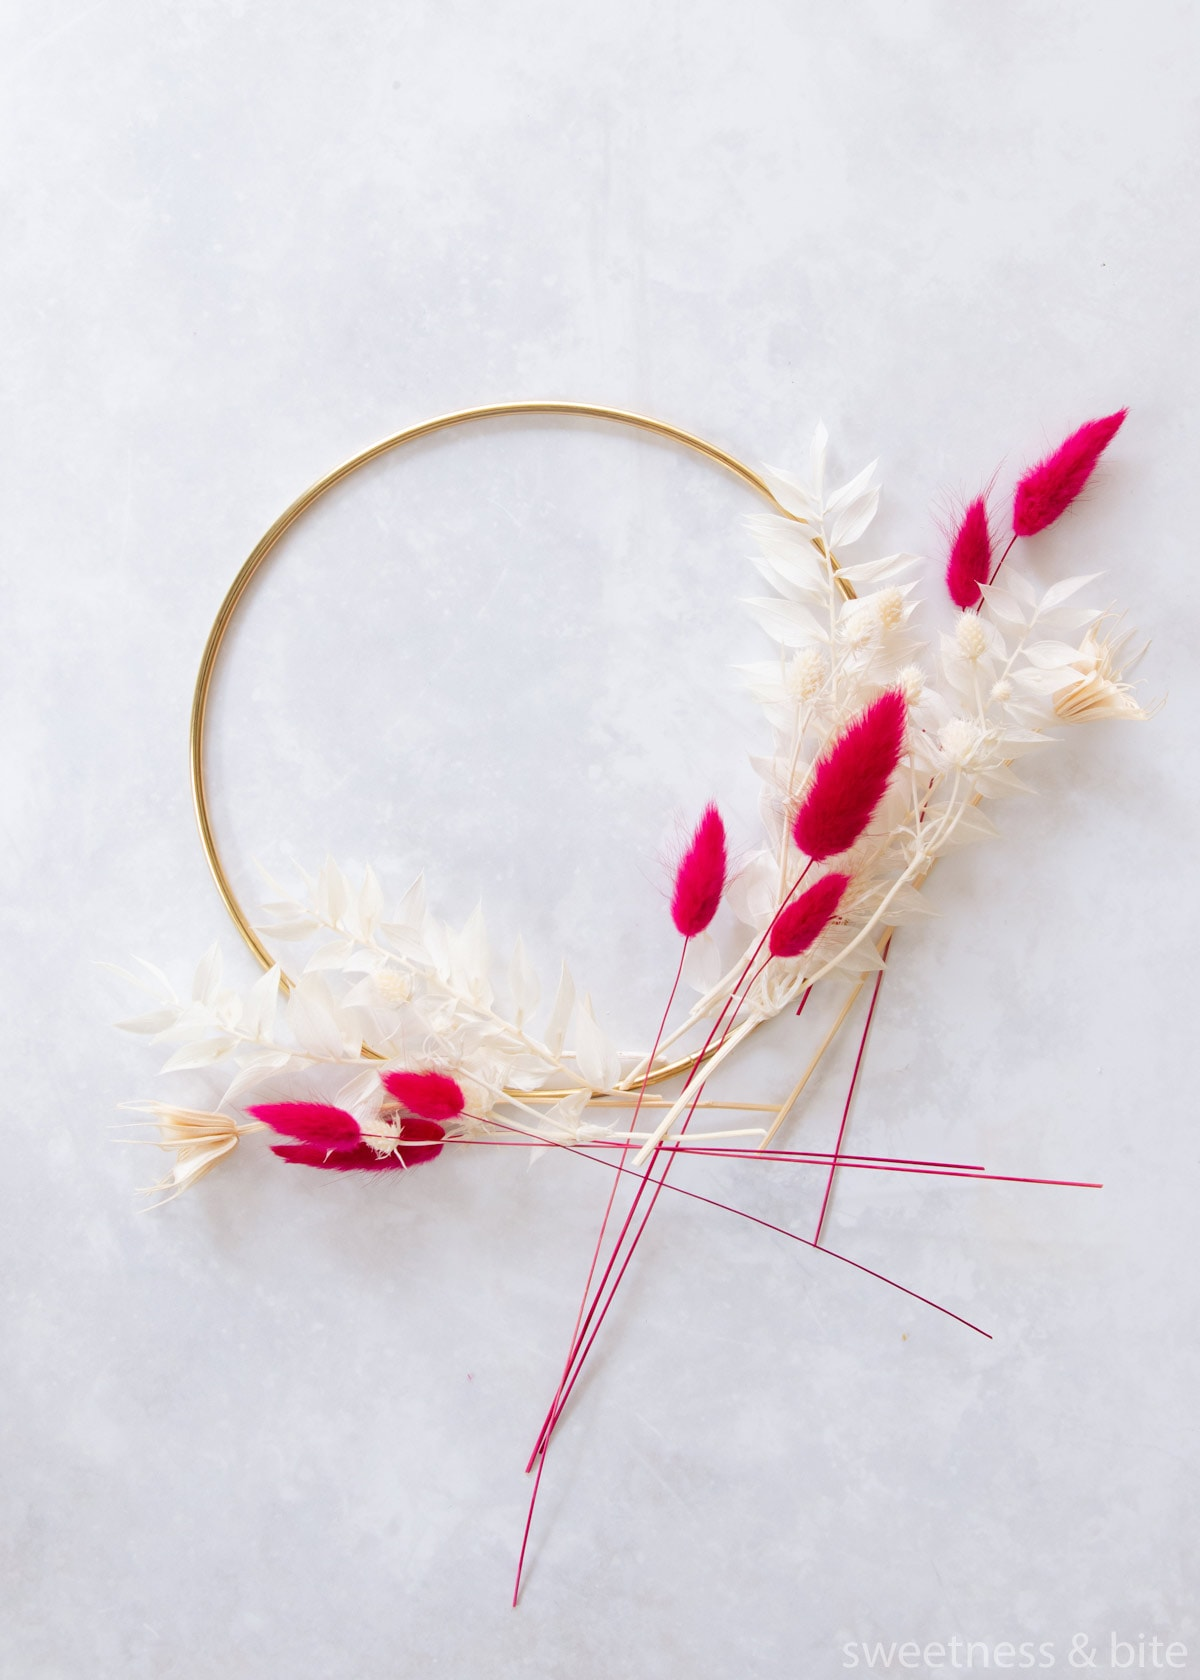 A gold hoop with white and pink preserved flowers and foliage arranged in a rough design.